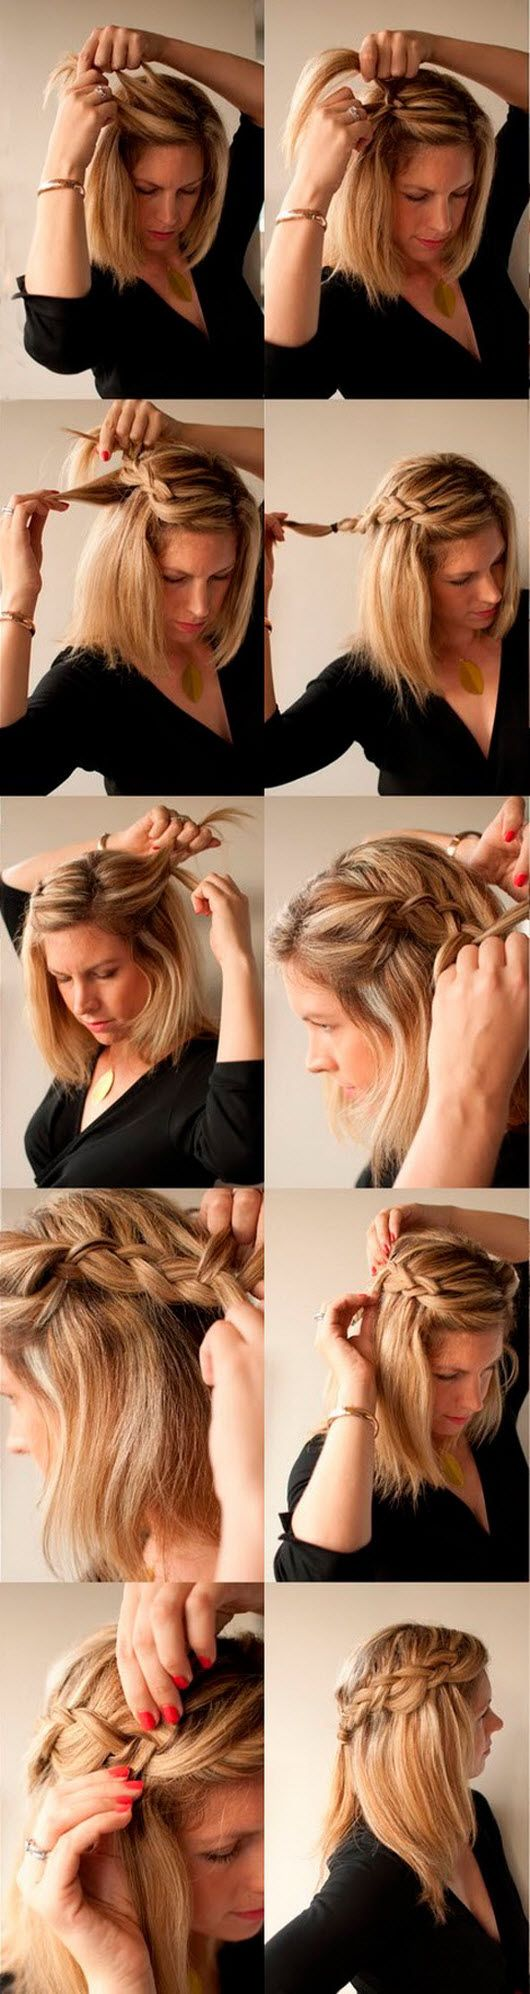 Hair in a ponytail first and divide conquer short blonde haircut